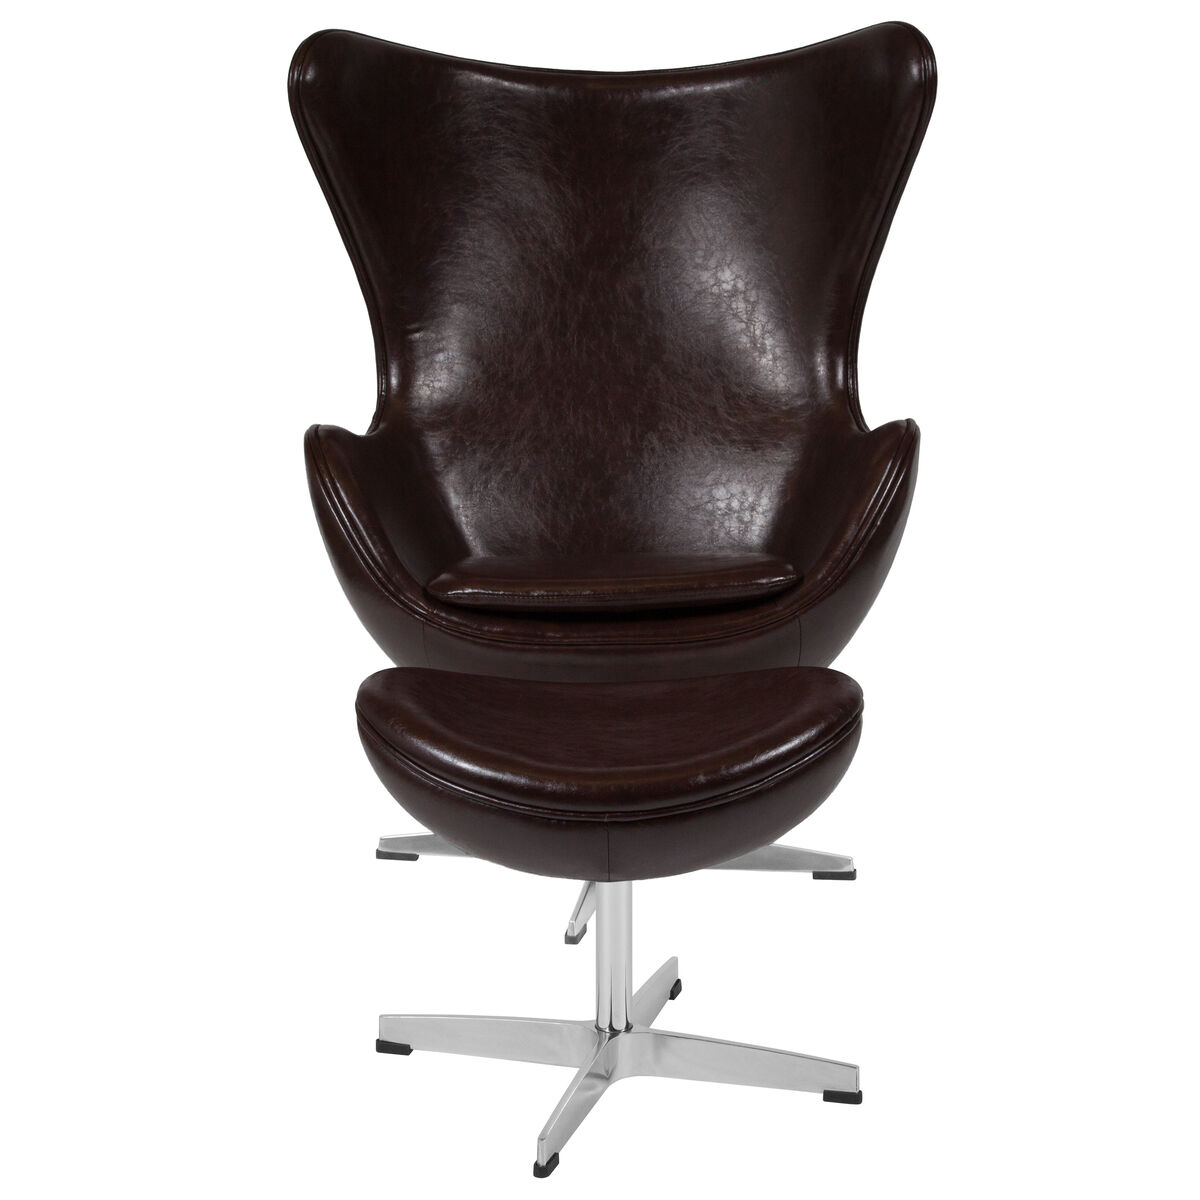 Peachy Brown Leather Egg Chair With Tilt Lock Mechanism And Ottoman Ibusinesslaw Wood Chair Design Ideas Ibusinesslaworg